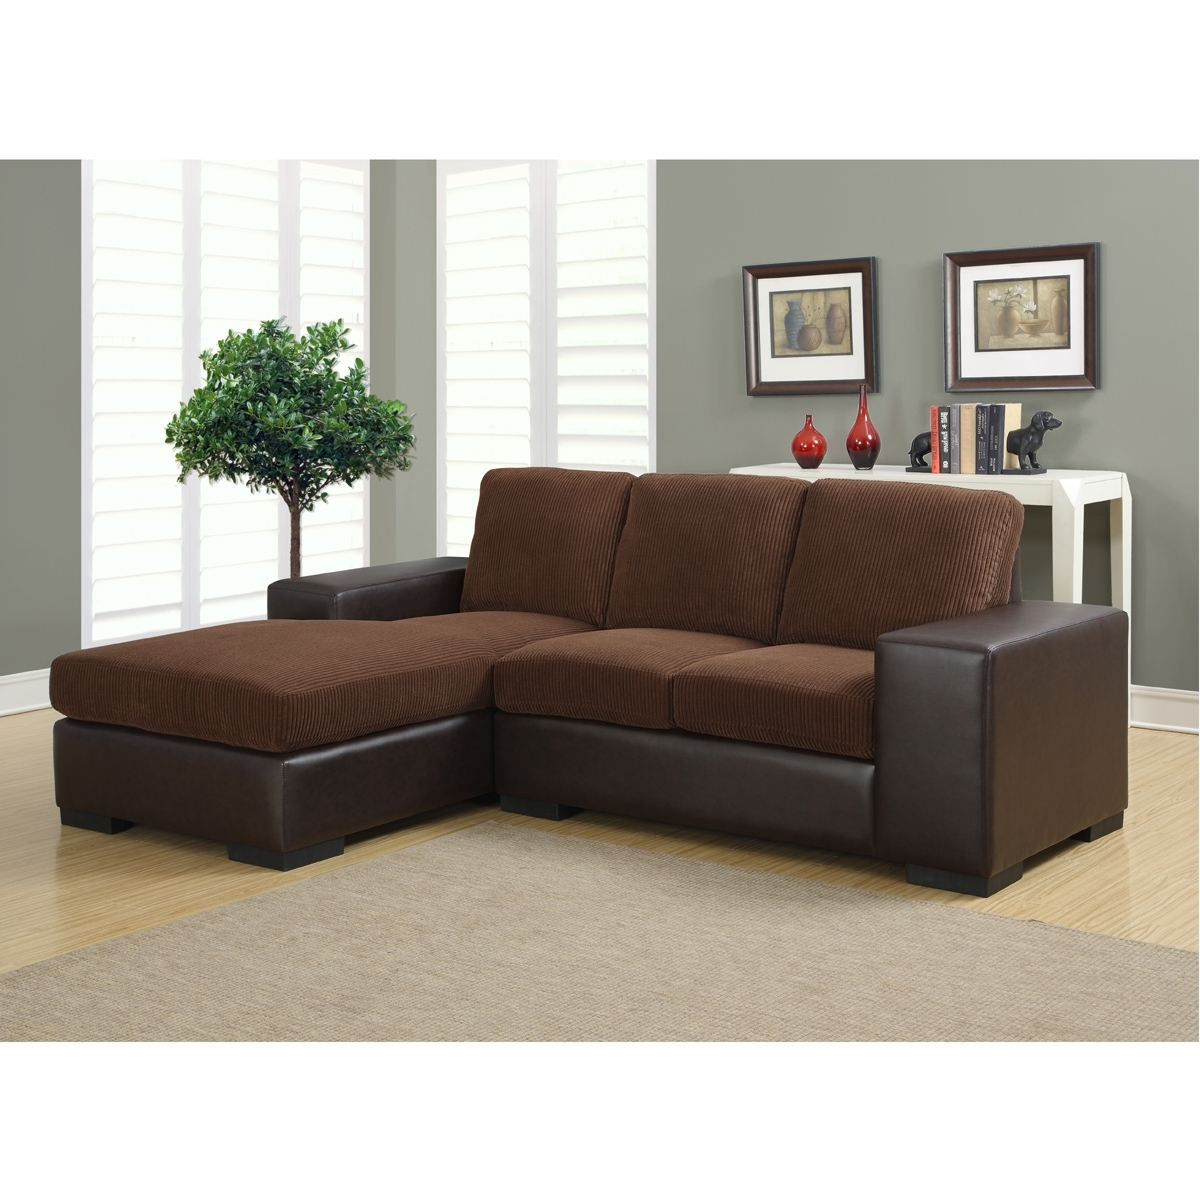 Jacob Sectional Sofa (View 5 of 15)